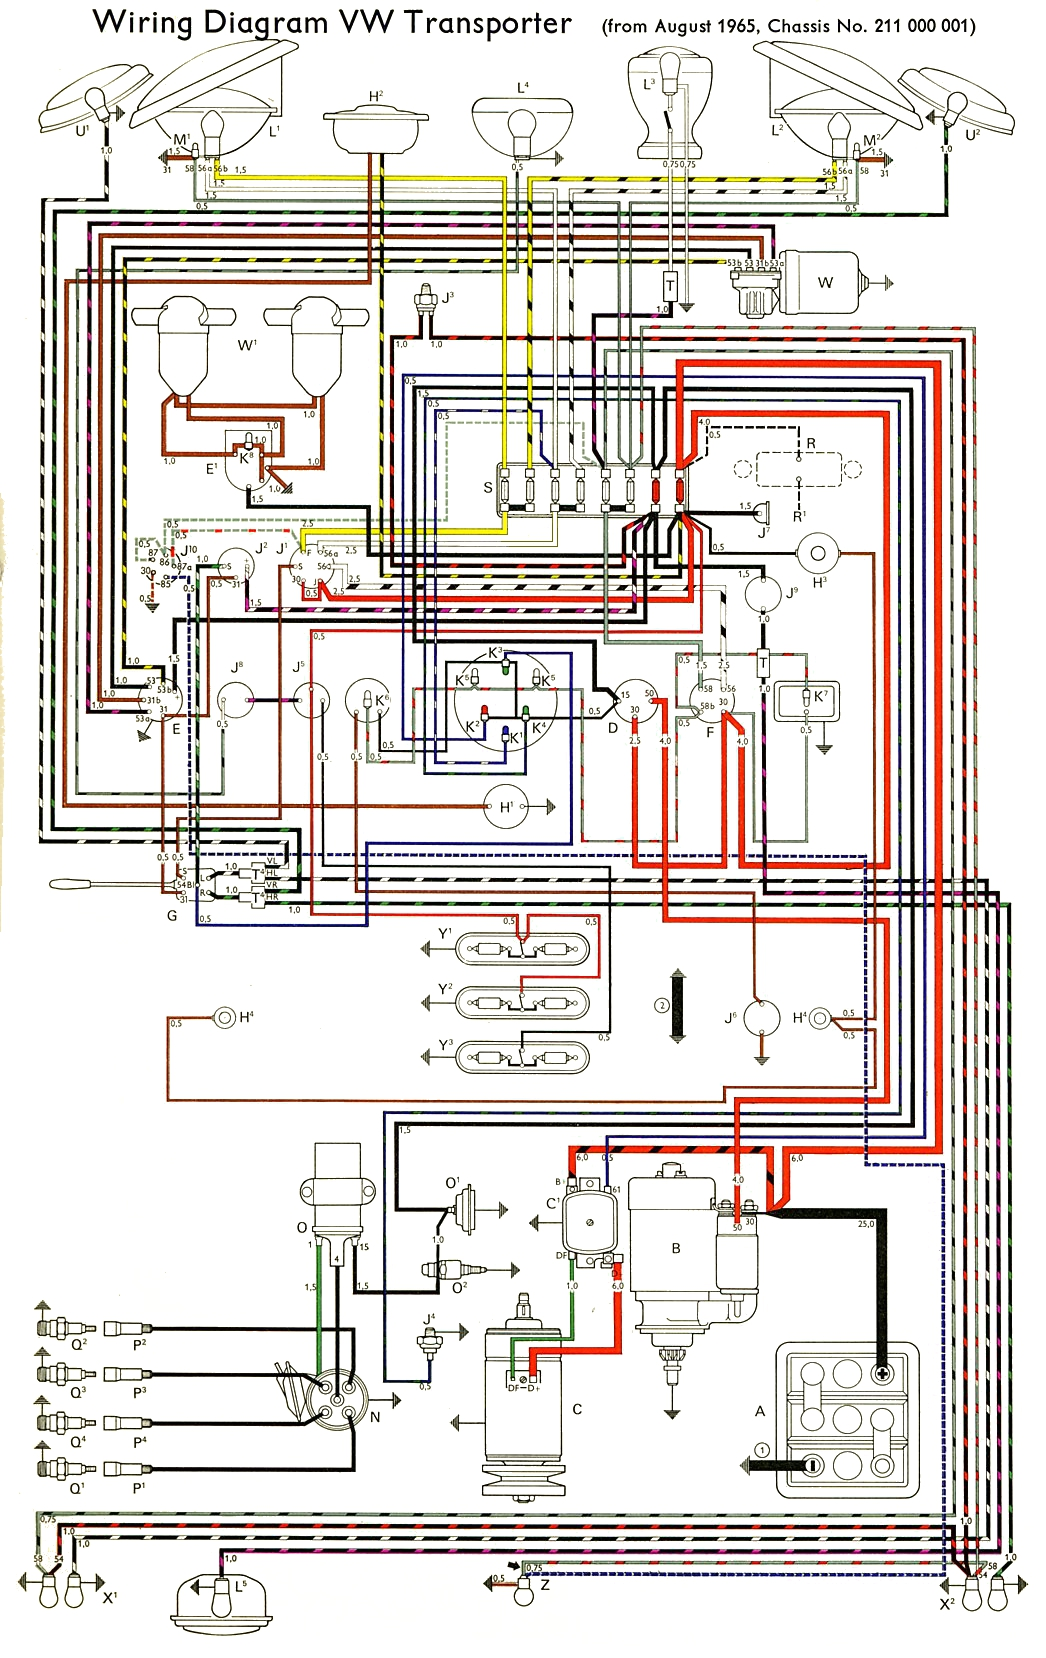 66 Vw Transporter Wiring Diagram Opinions About Of 1972 Bug Engine Thesamba Com Type 2 Diagrams Rh Volkswagen Beetle 56